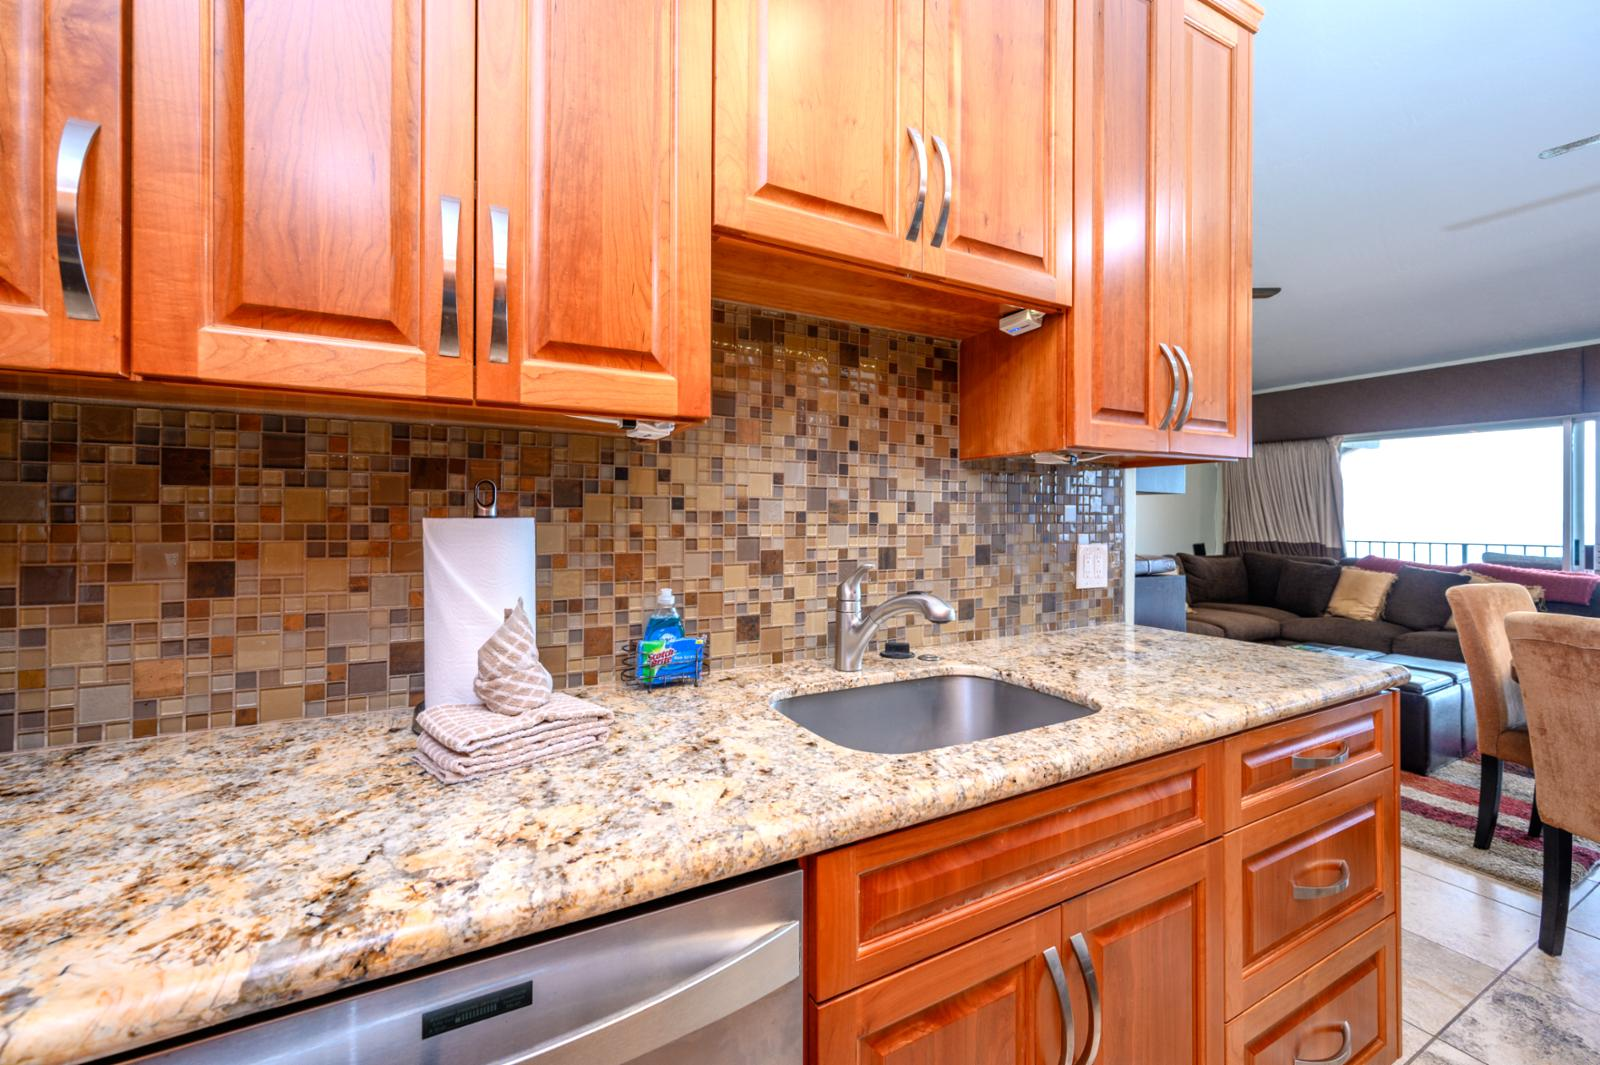 Beautiful granite countertops with Stainless steel appliances